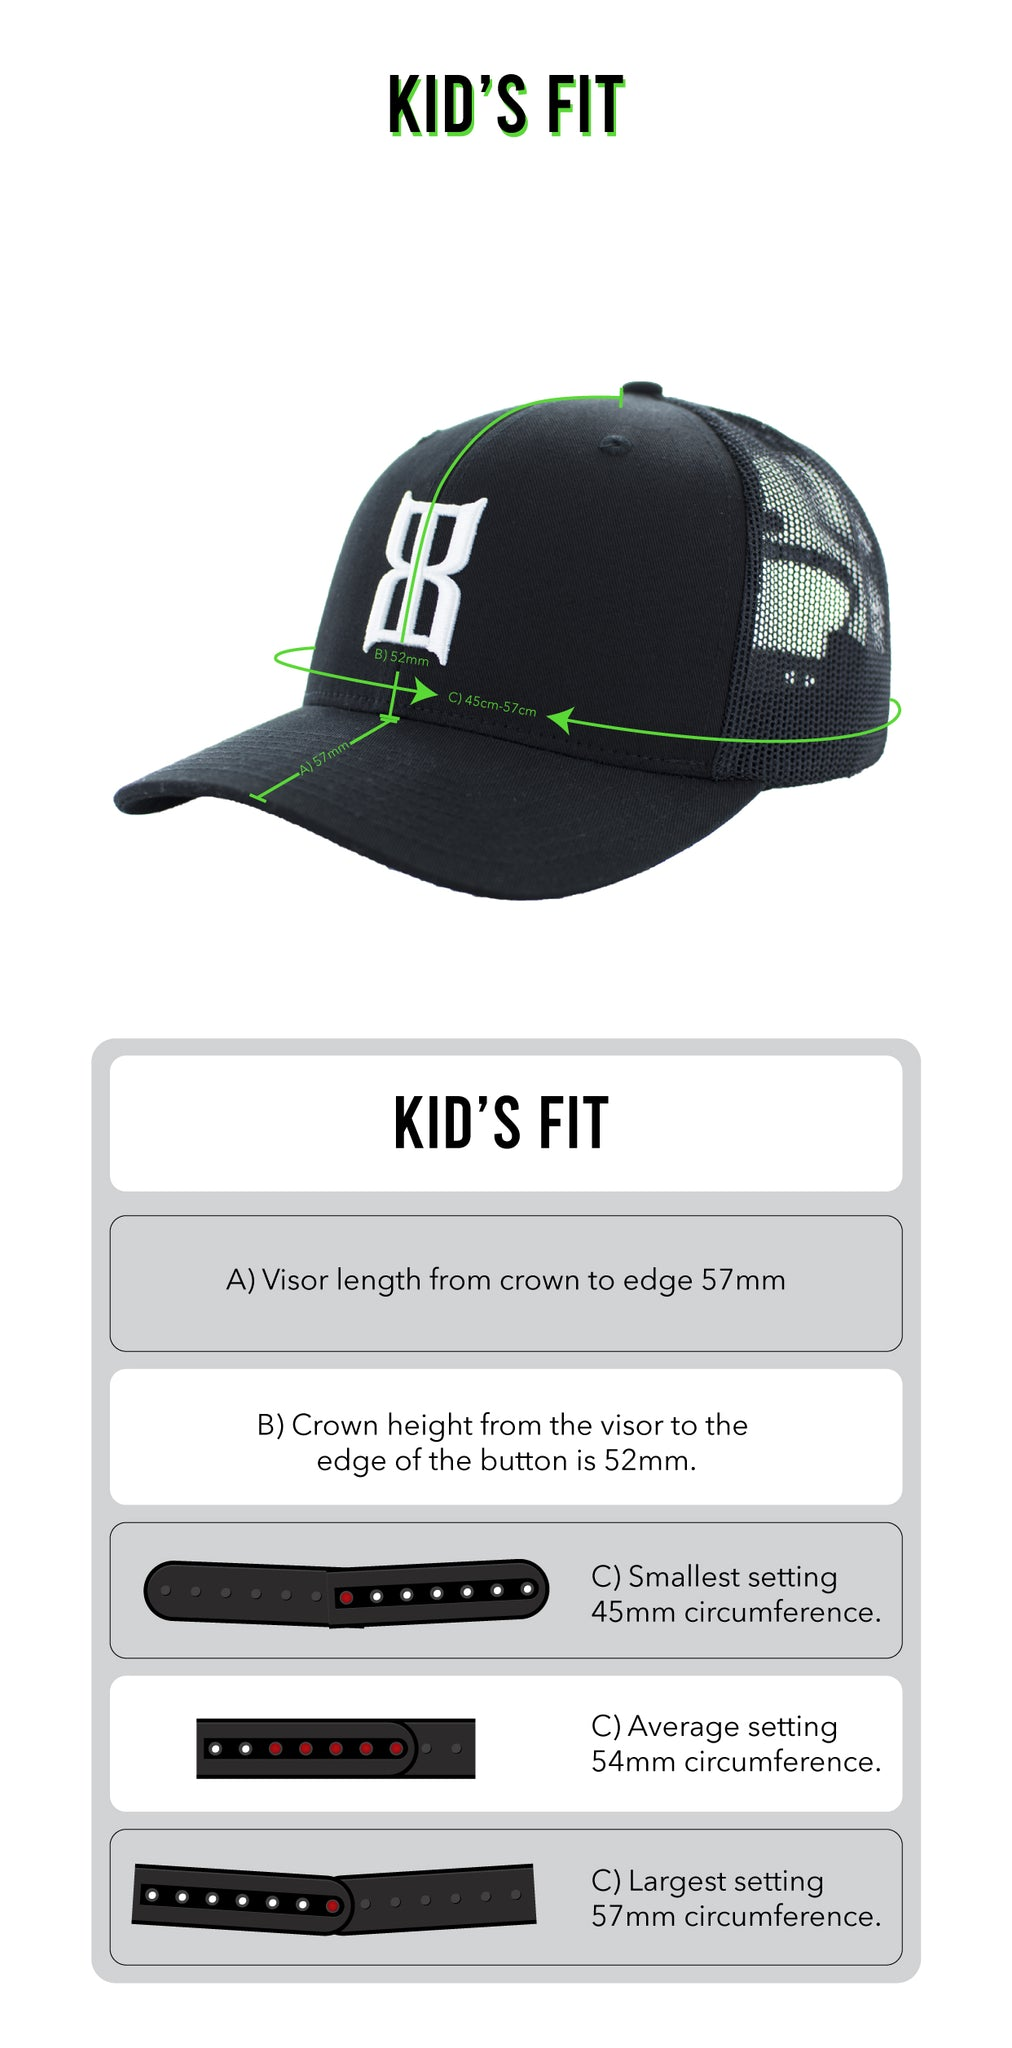 Kid's Fit Guide